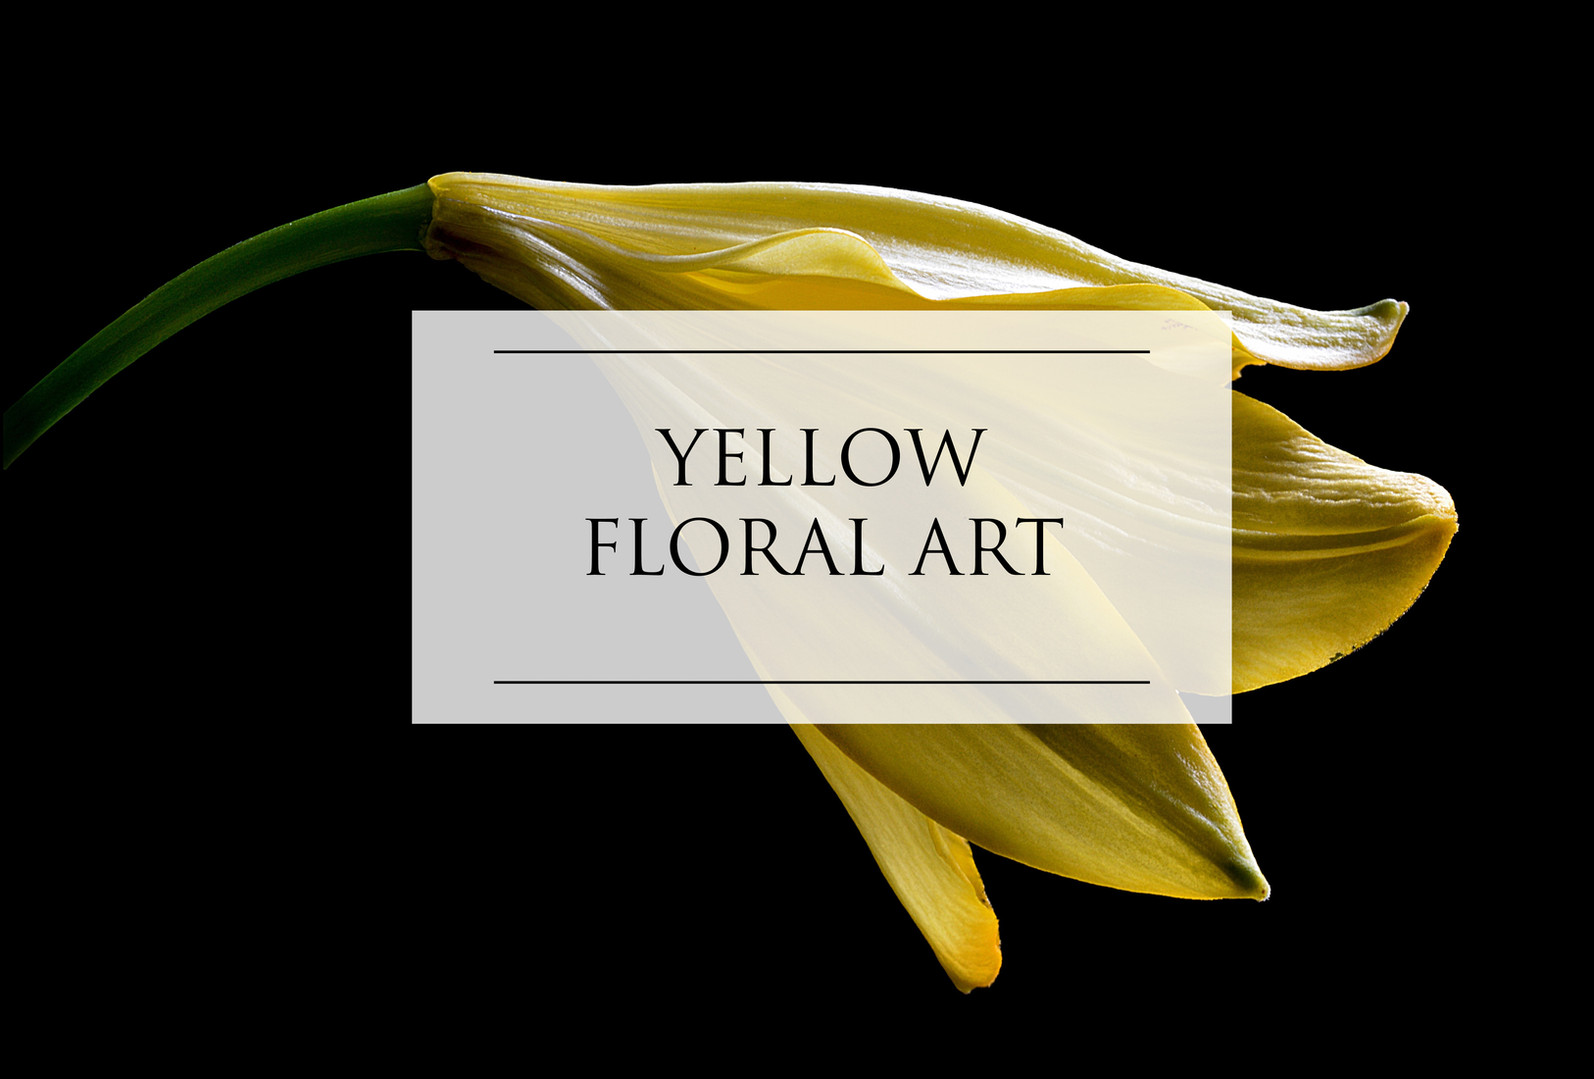 YELLOW FLORAL ART